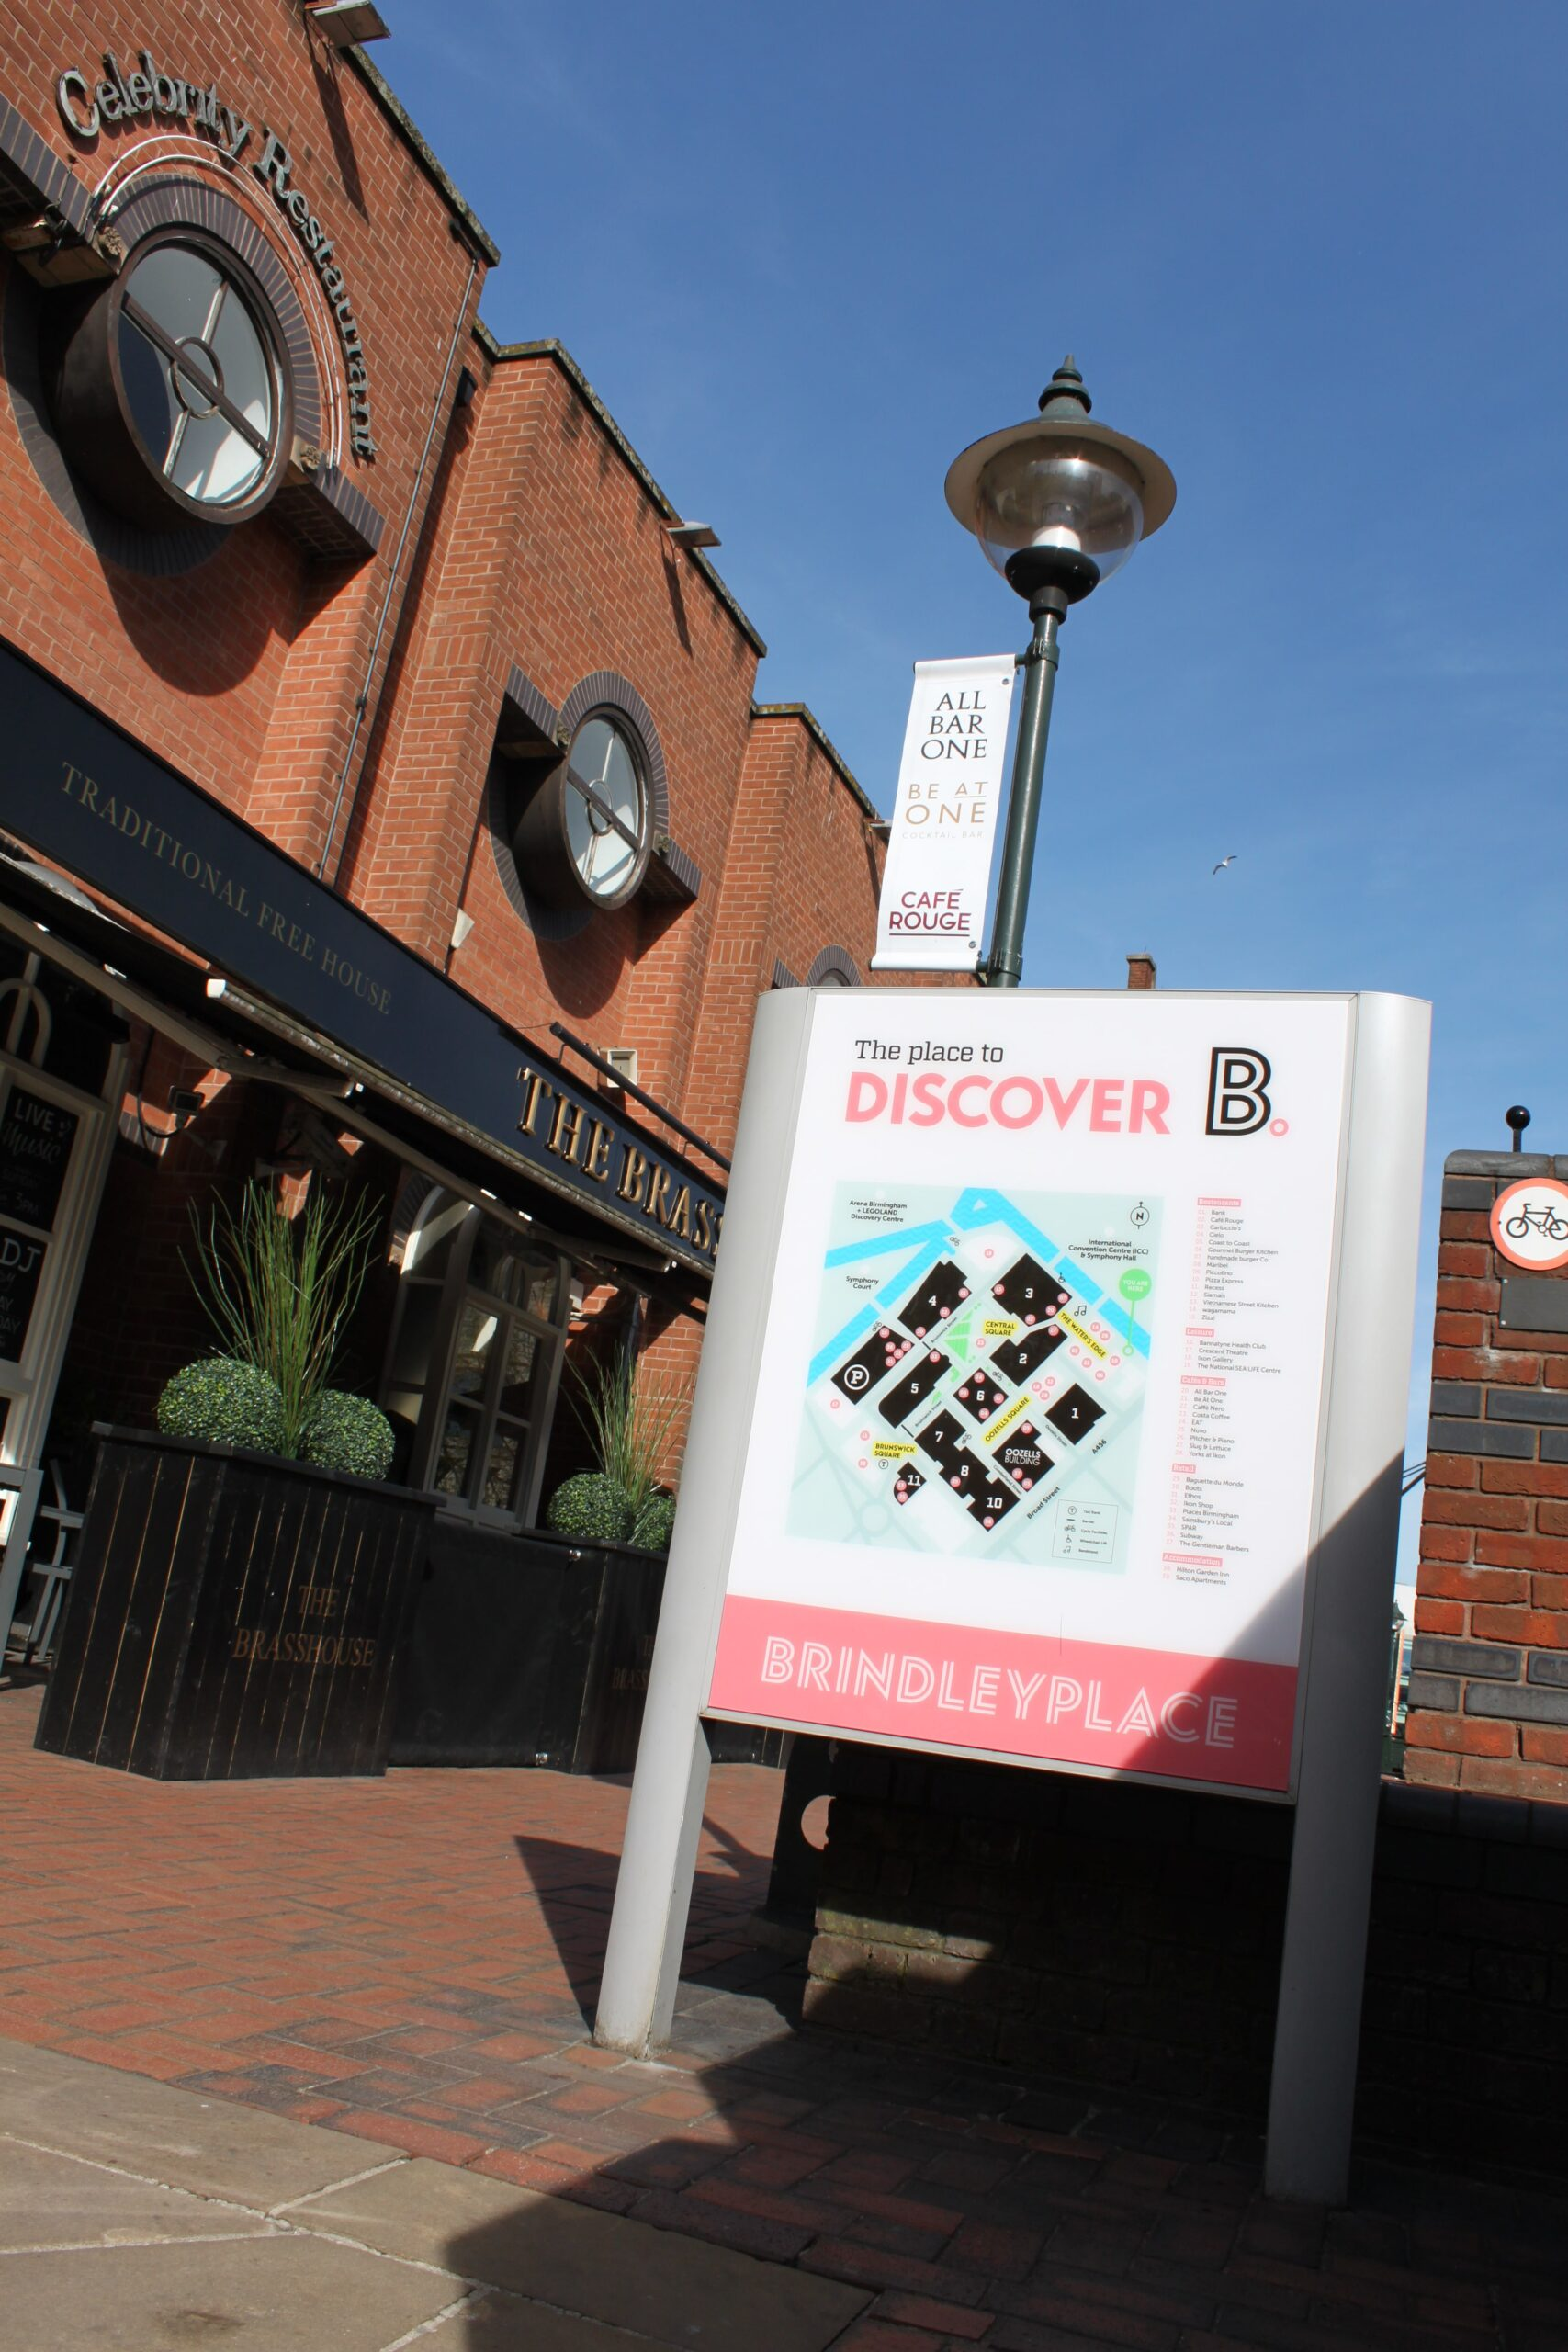 Brindley-Place-Concept-sign-and-display-